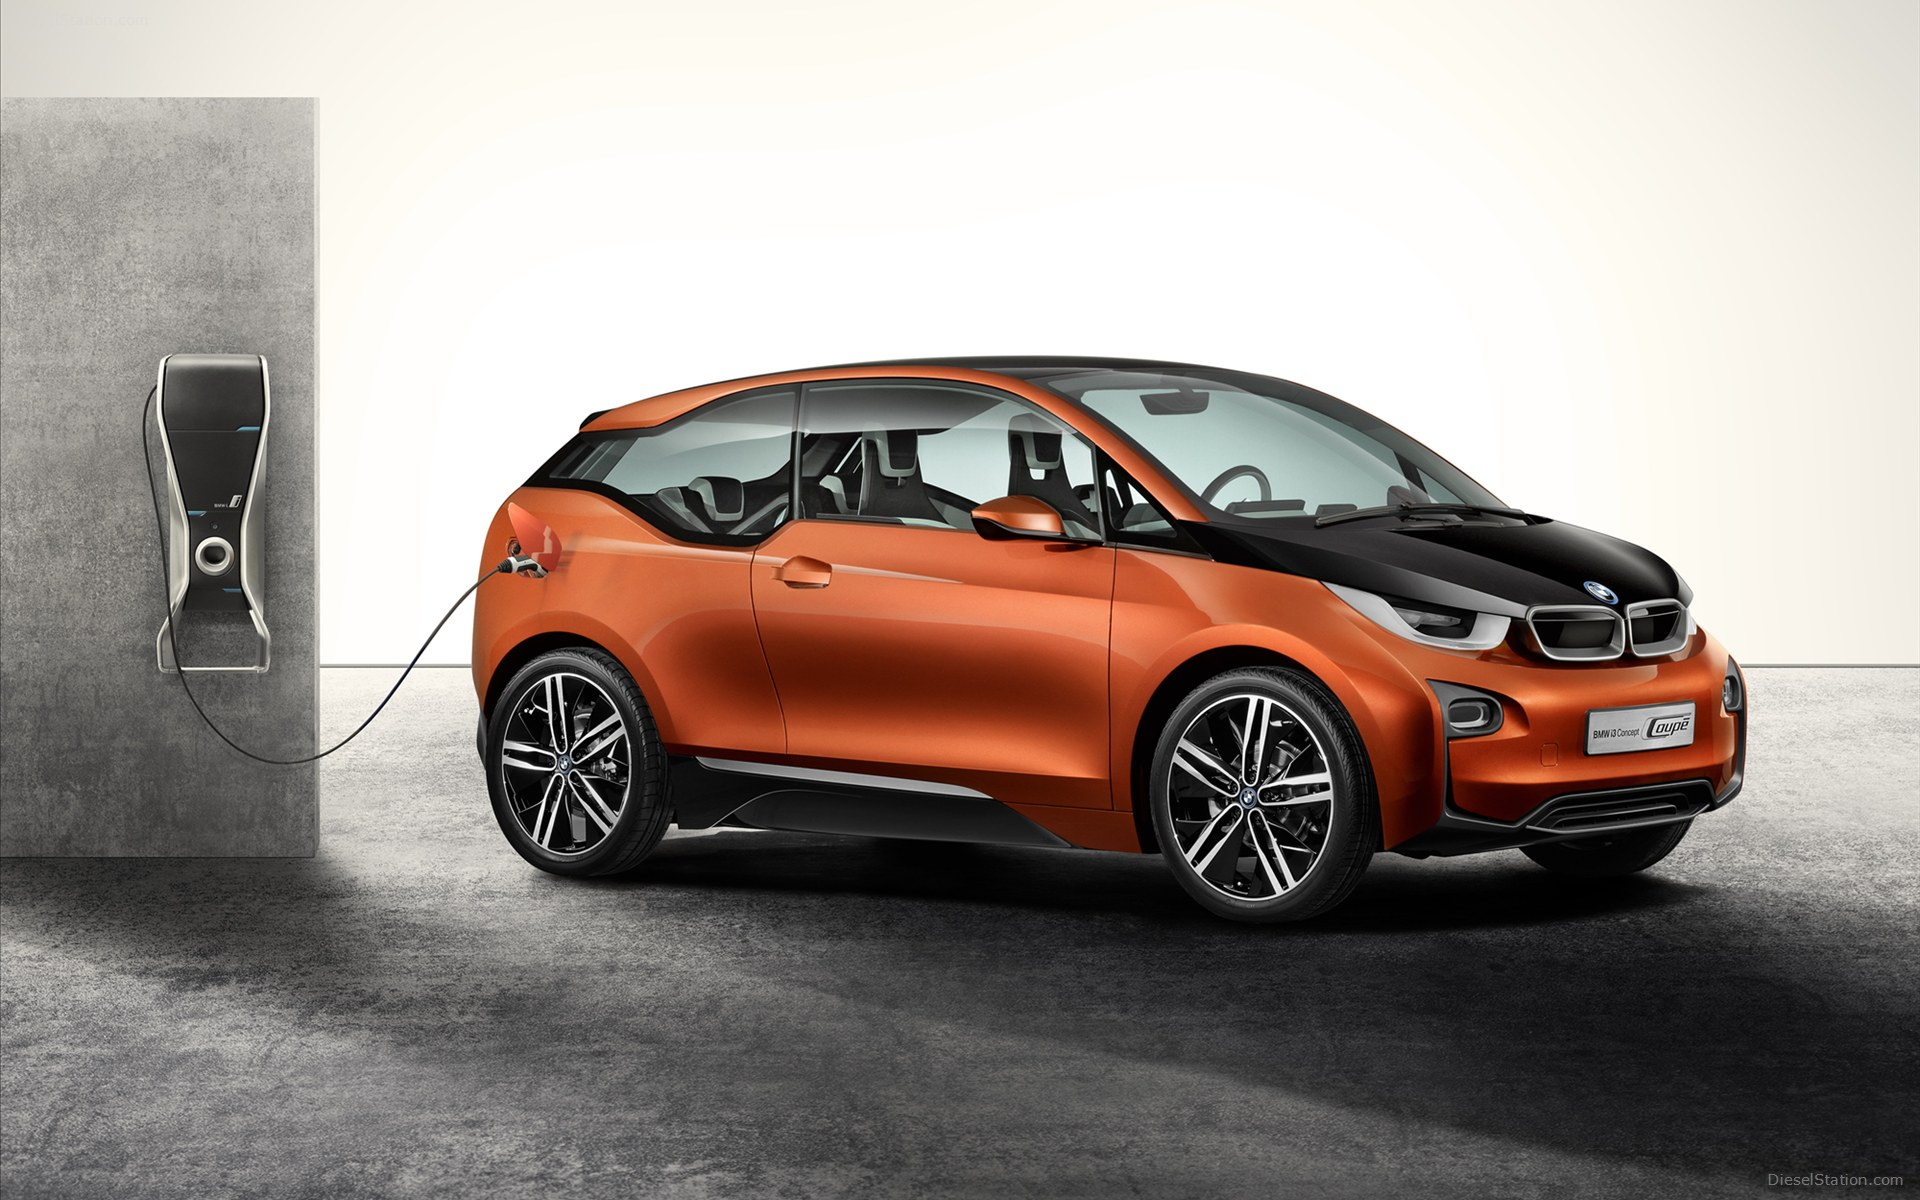 bmw-i3-concept-coupe-2012-widescreen-21.jpg